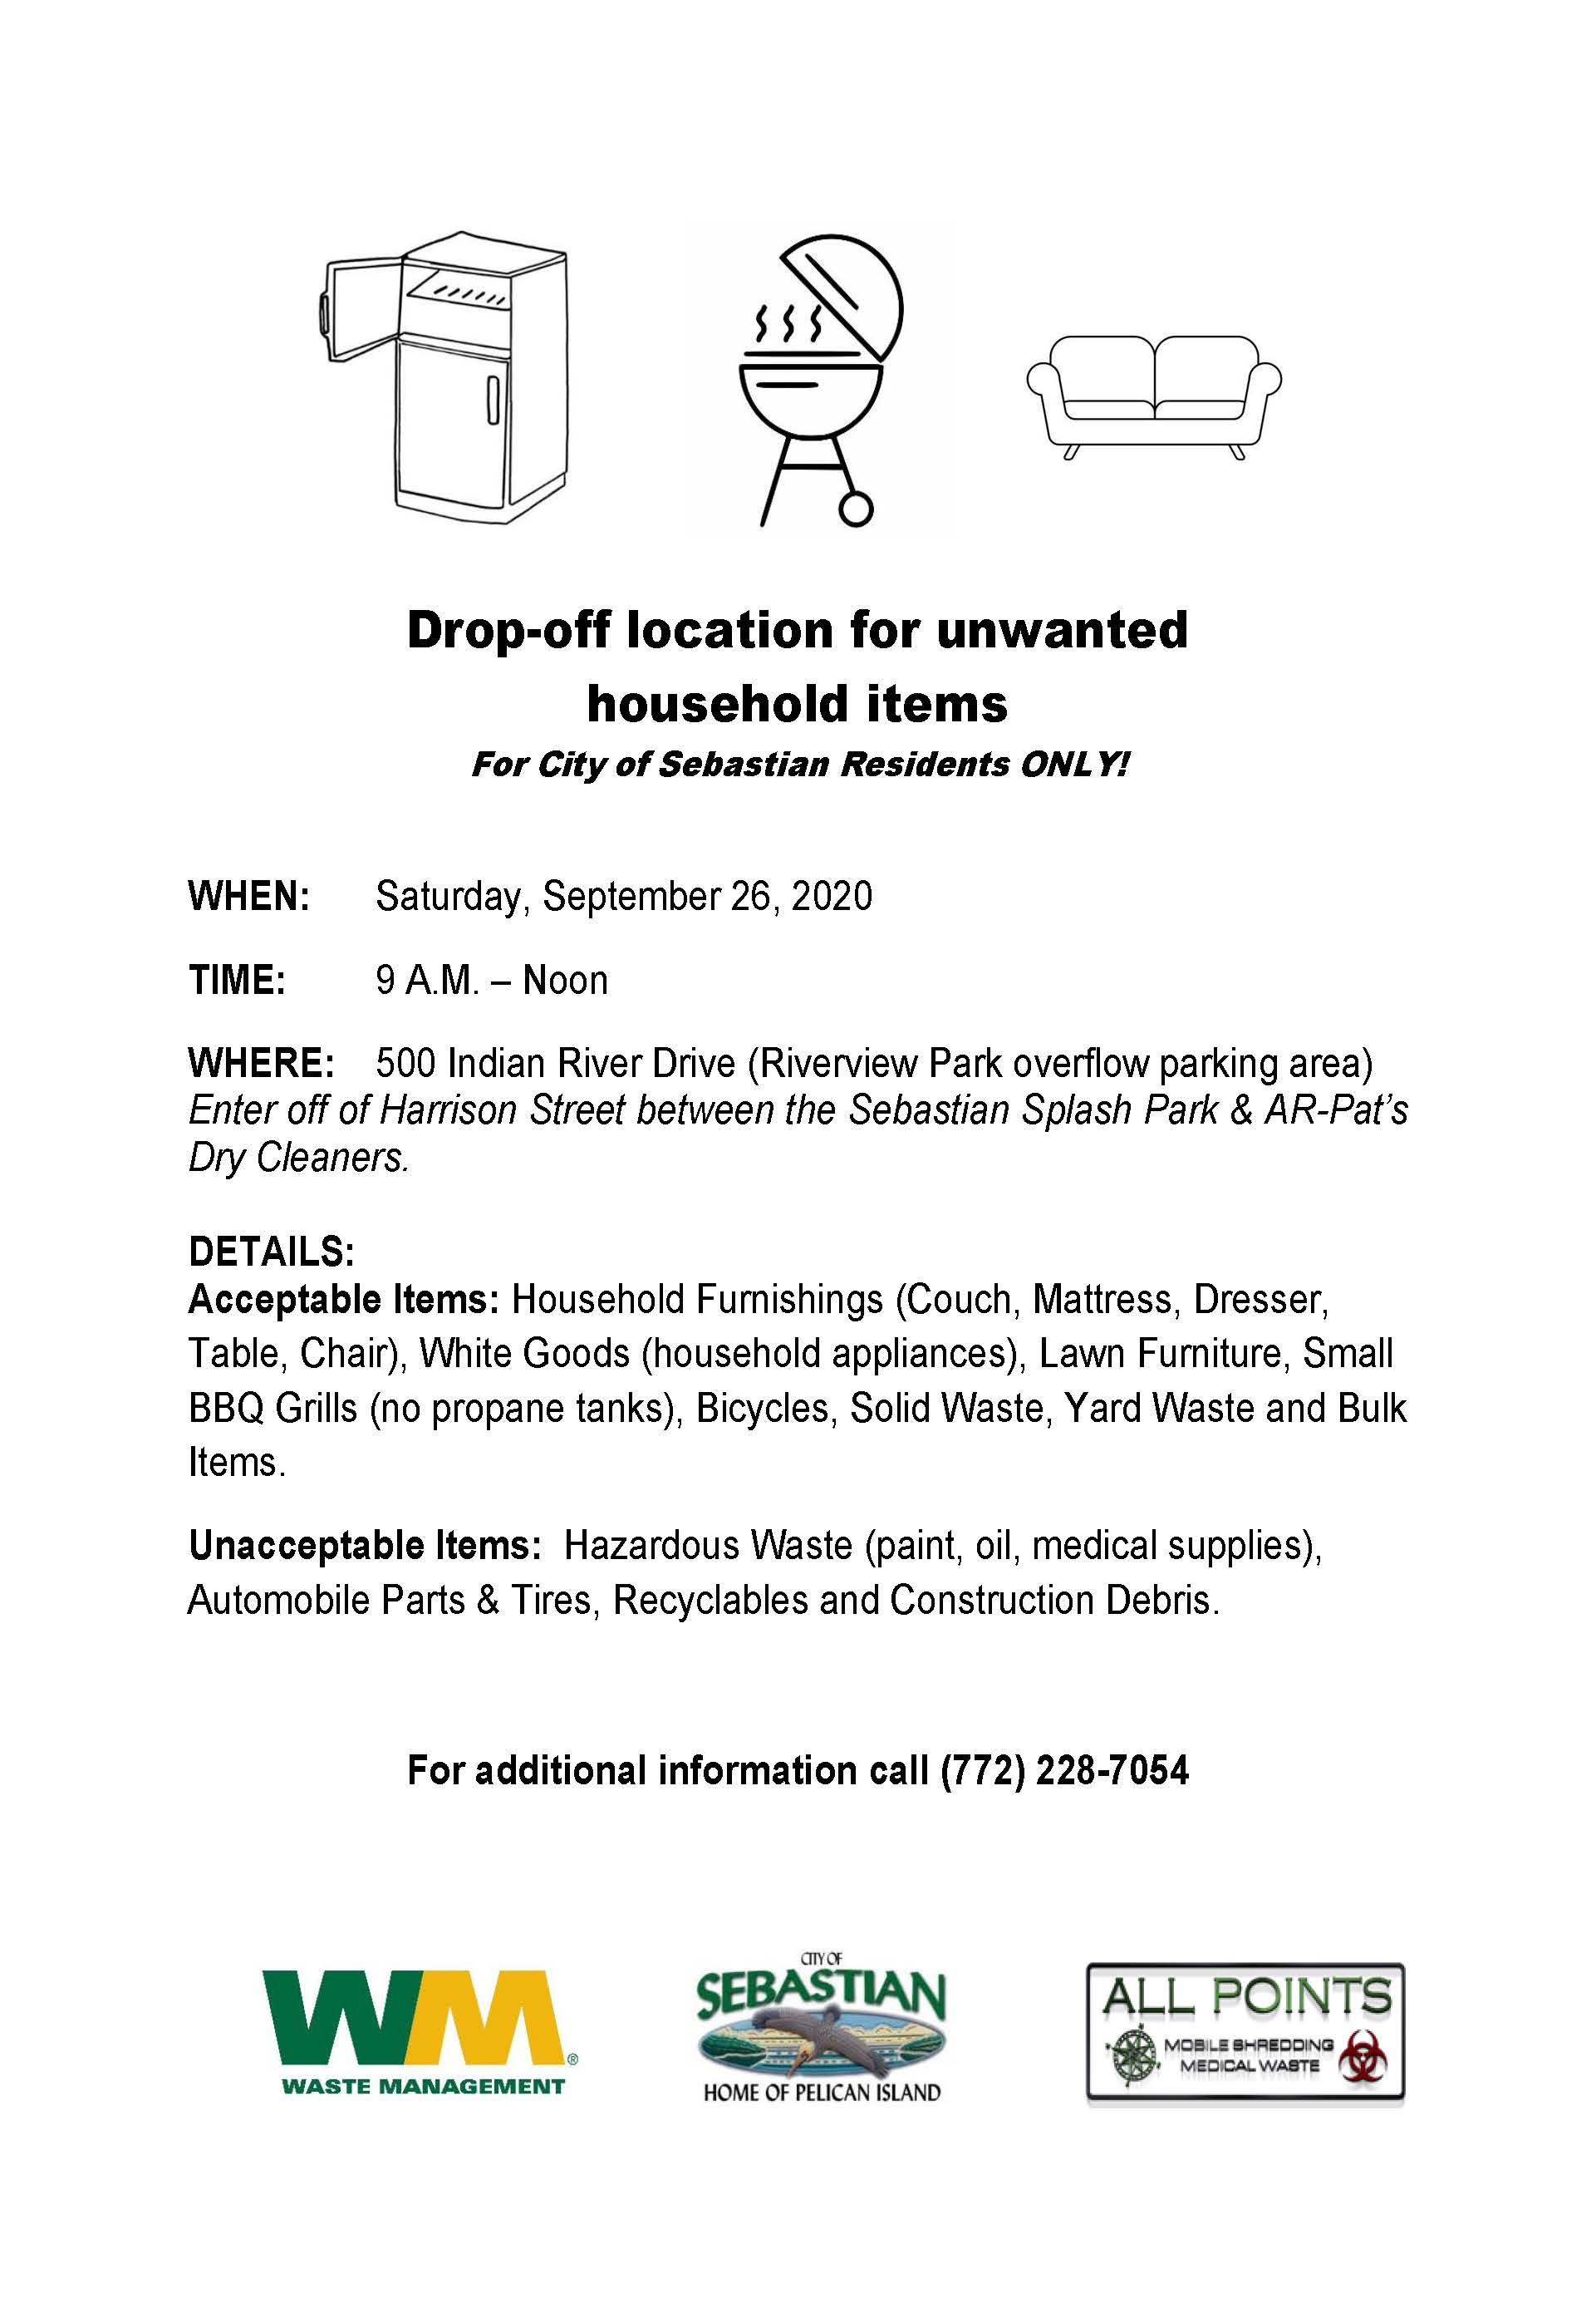 City of Sebastian Drop-off location for unwanted household items flyer.